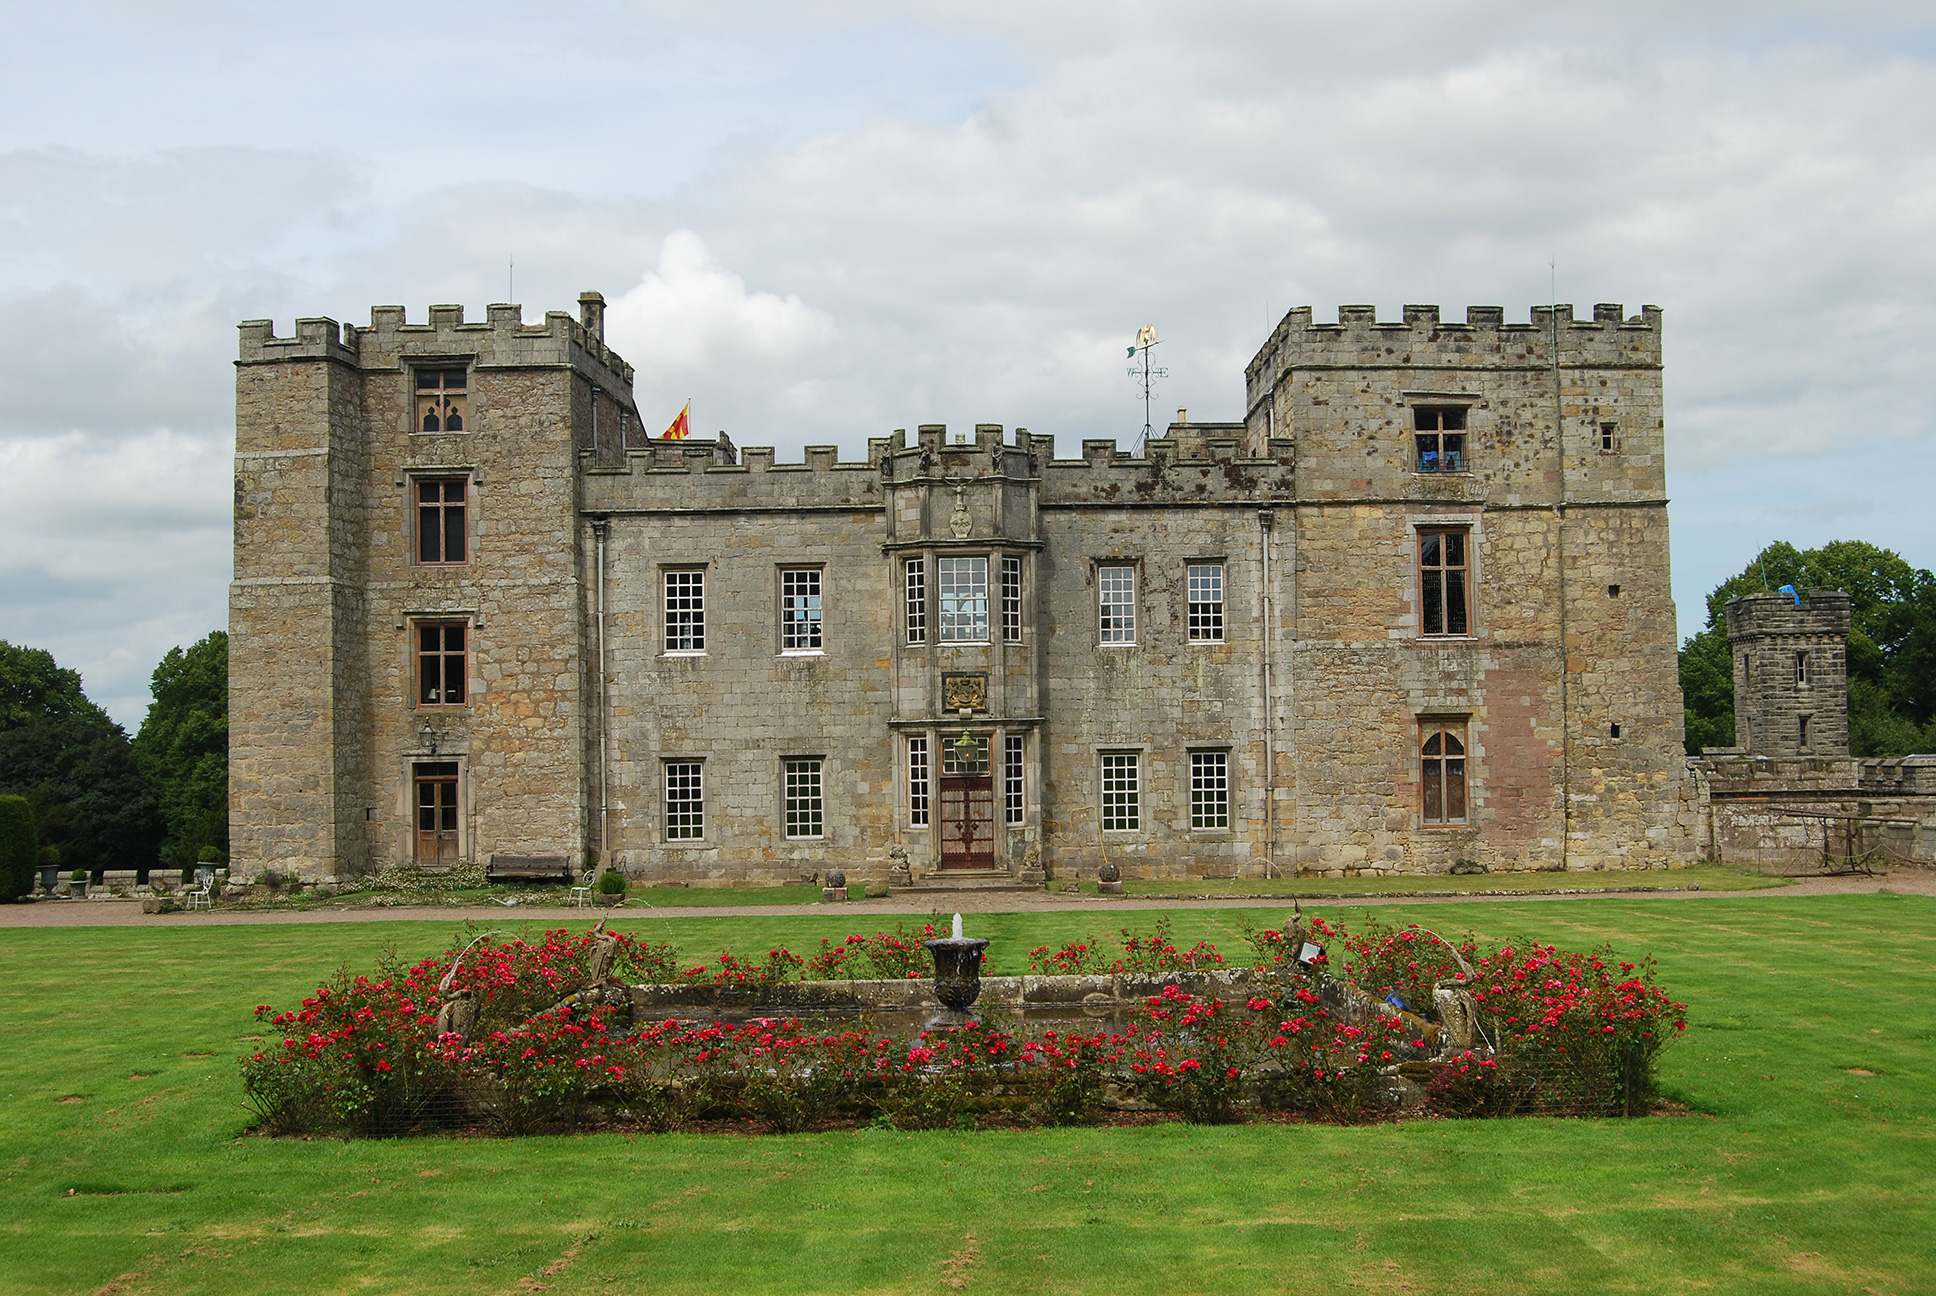 Great Castles - Gallery - Chillingham Castle